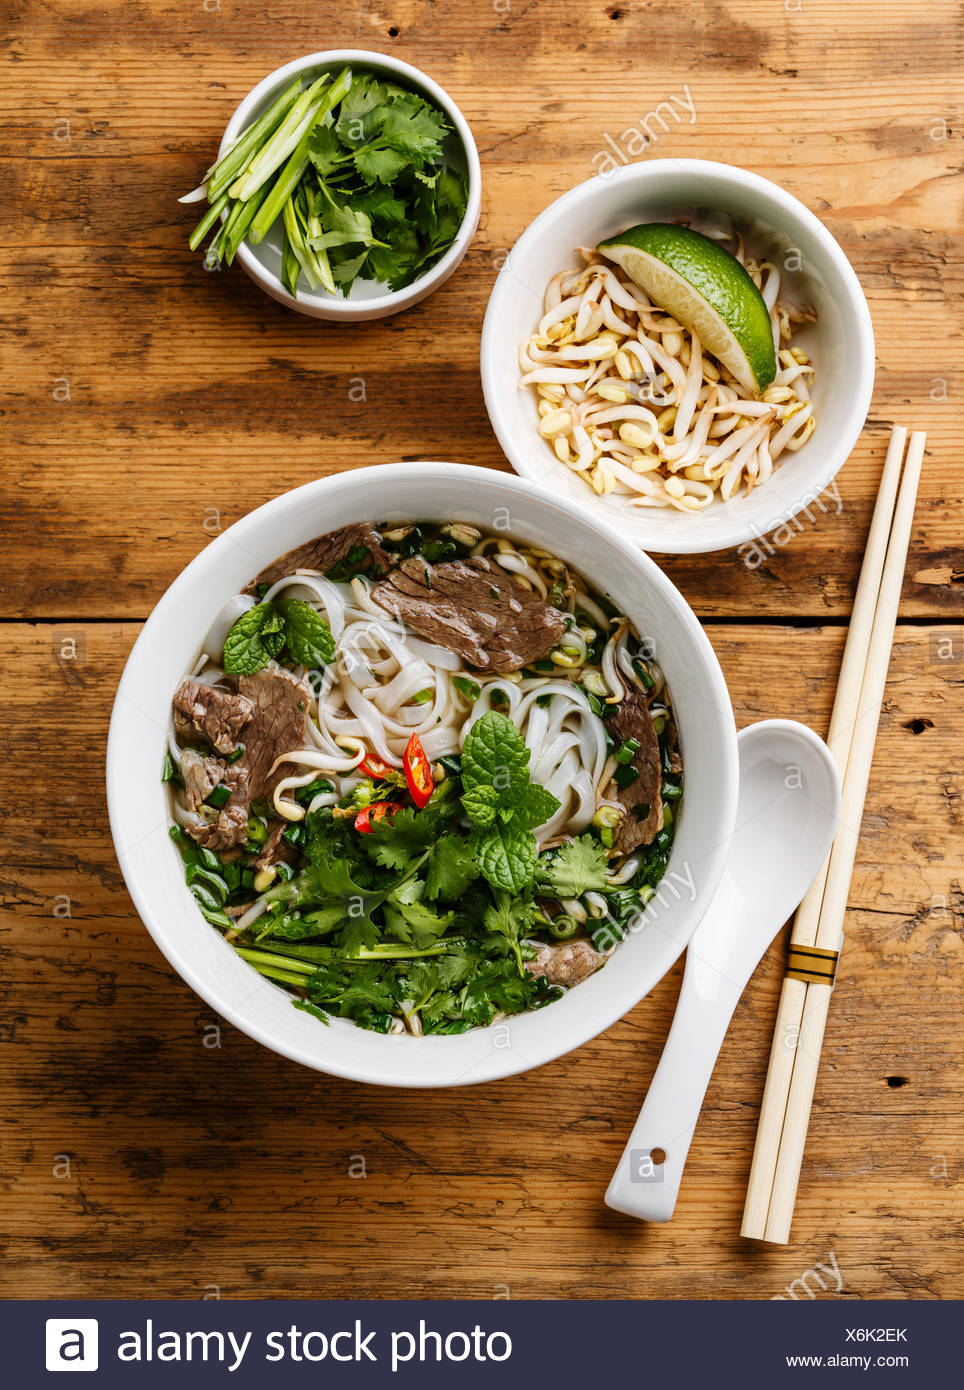 Pho Bo vietnamese Soup with beef and soybean seedlings on wooden 964x1390